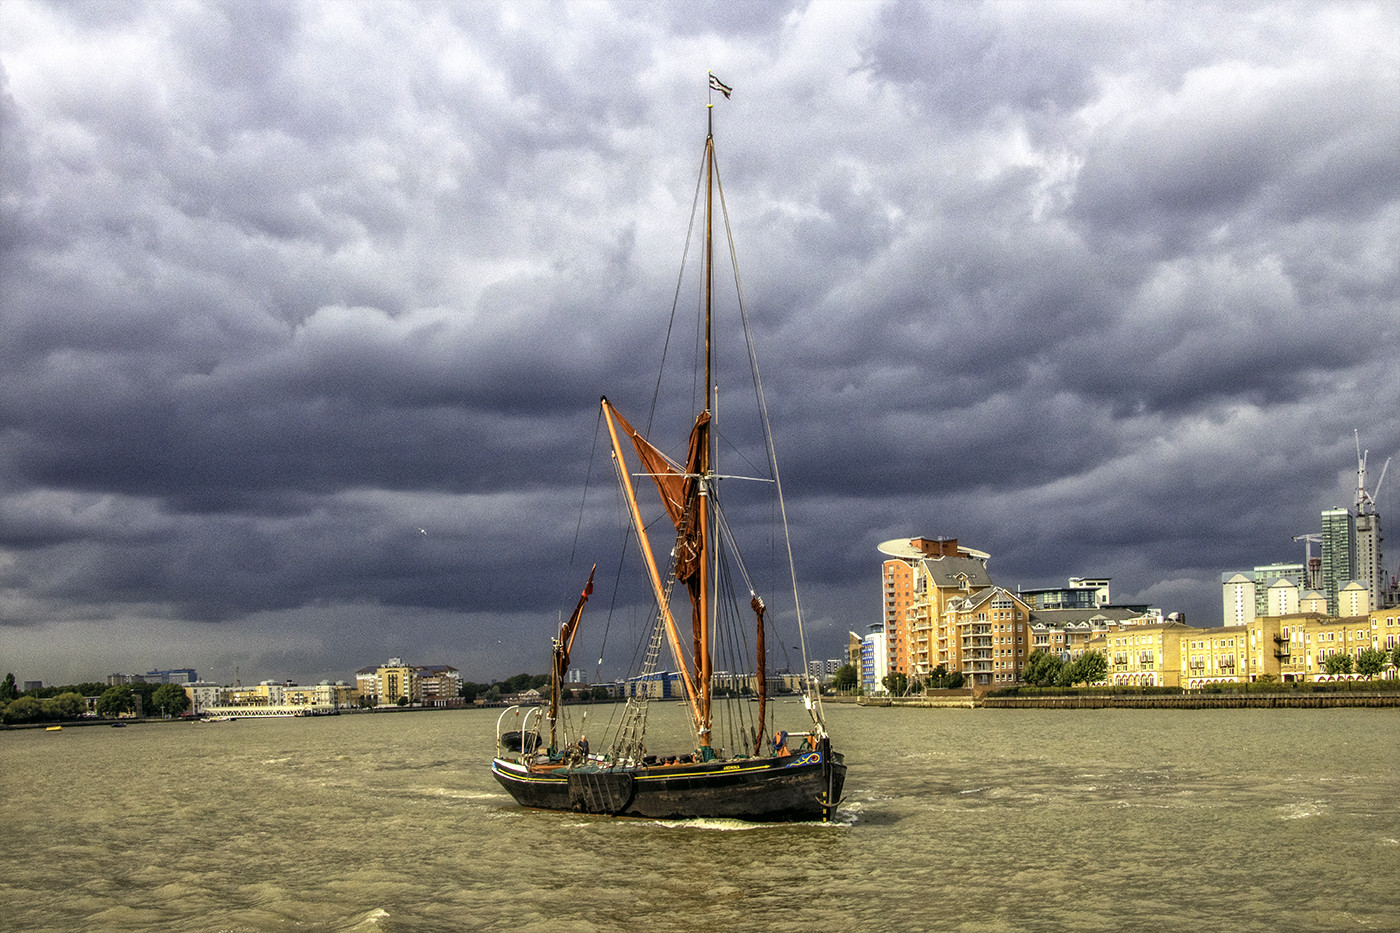 18 THAMES SAILING BARGE LEAVING BEFORE THE STORM by Philip Easom